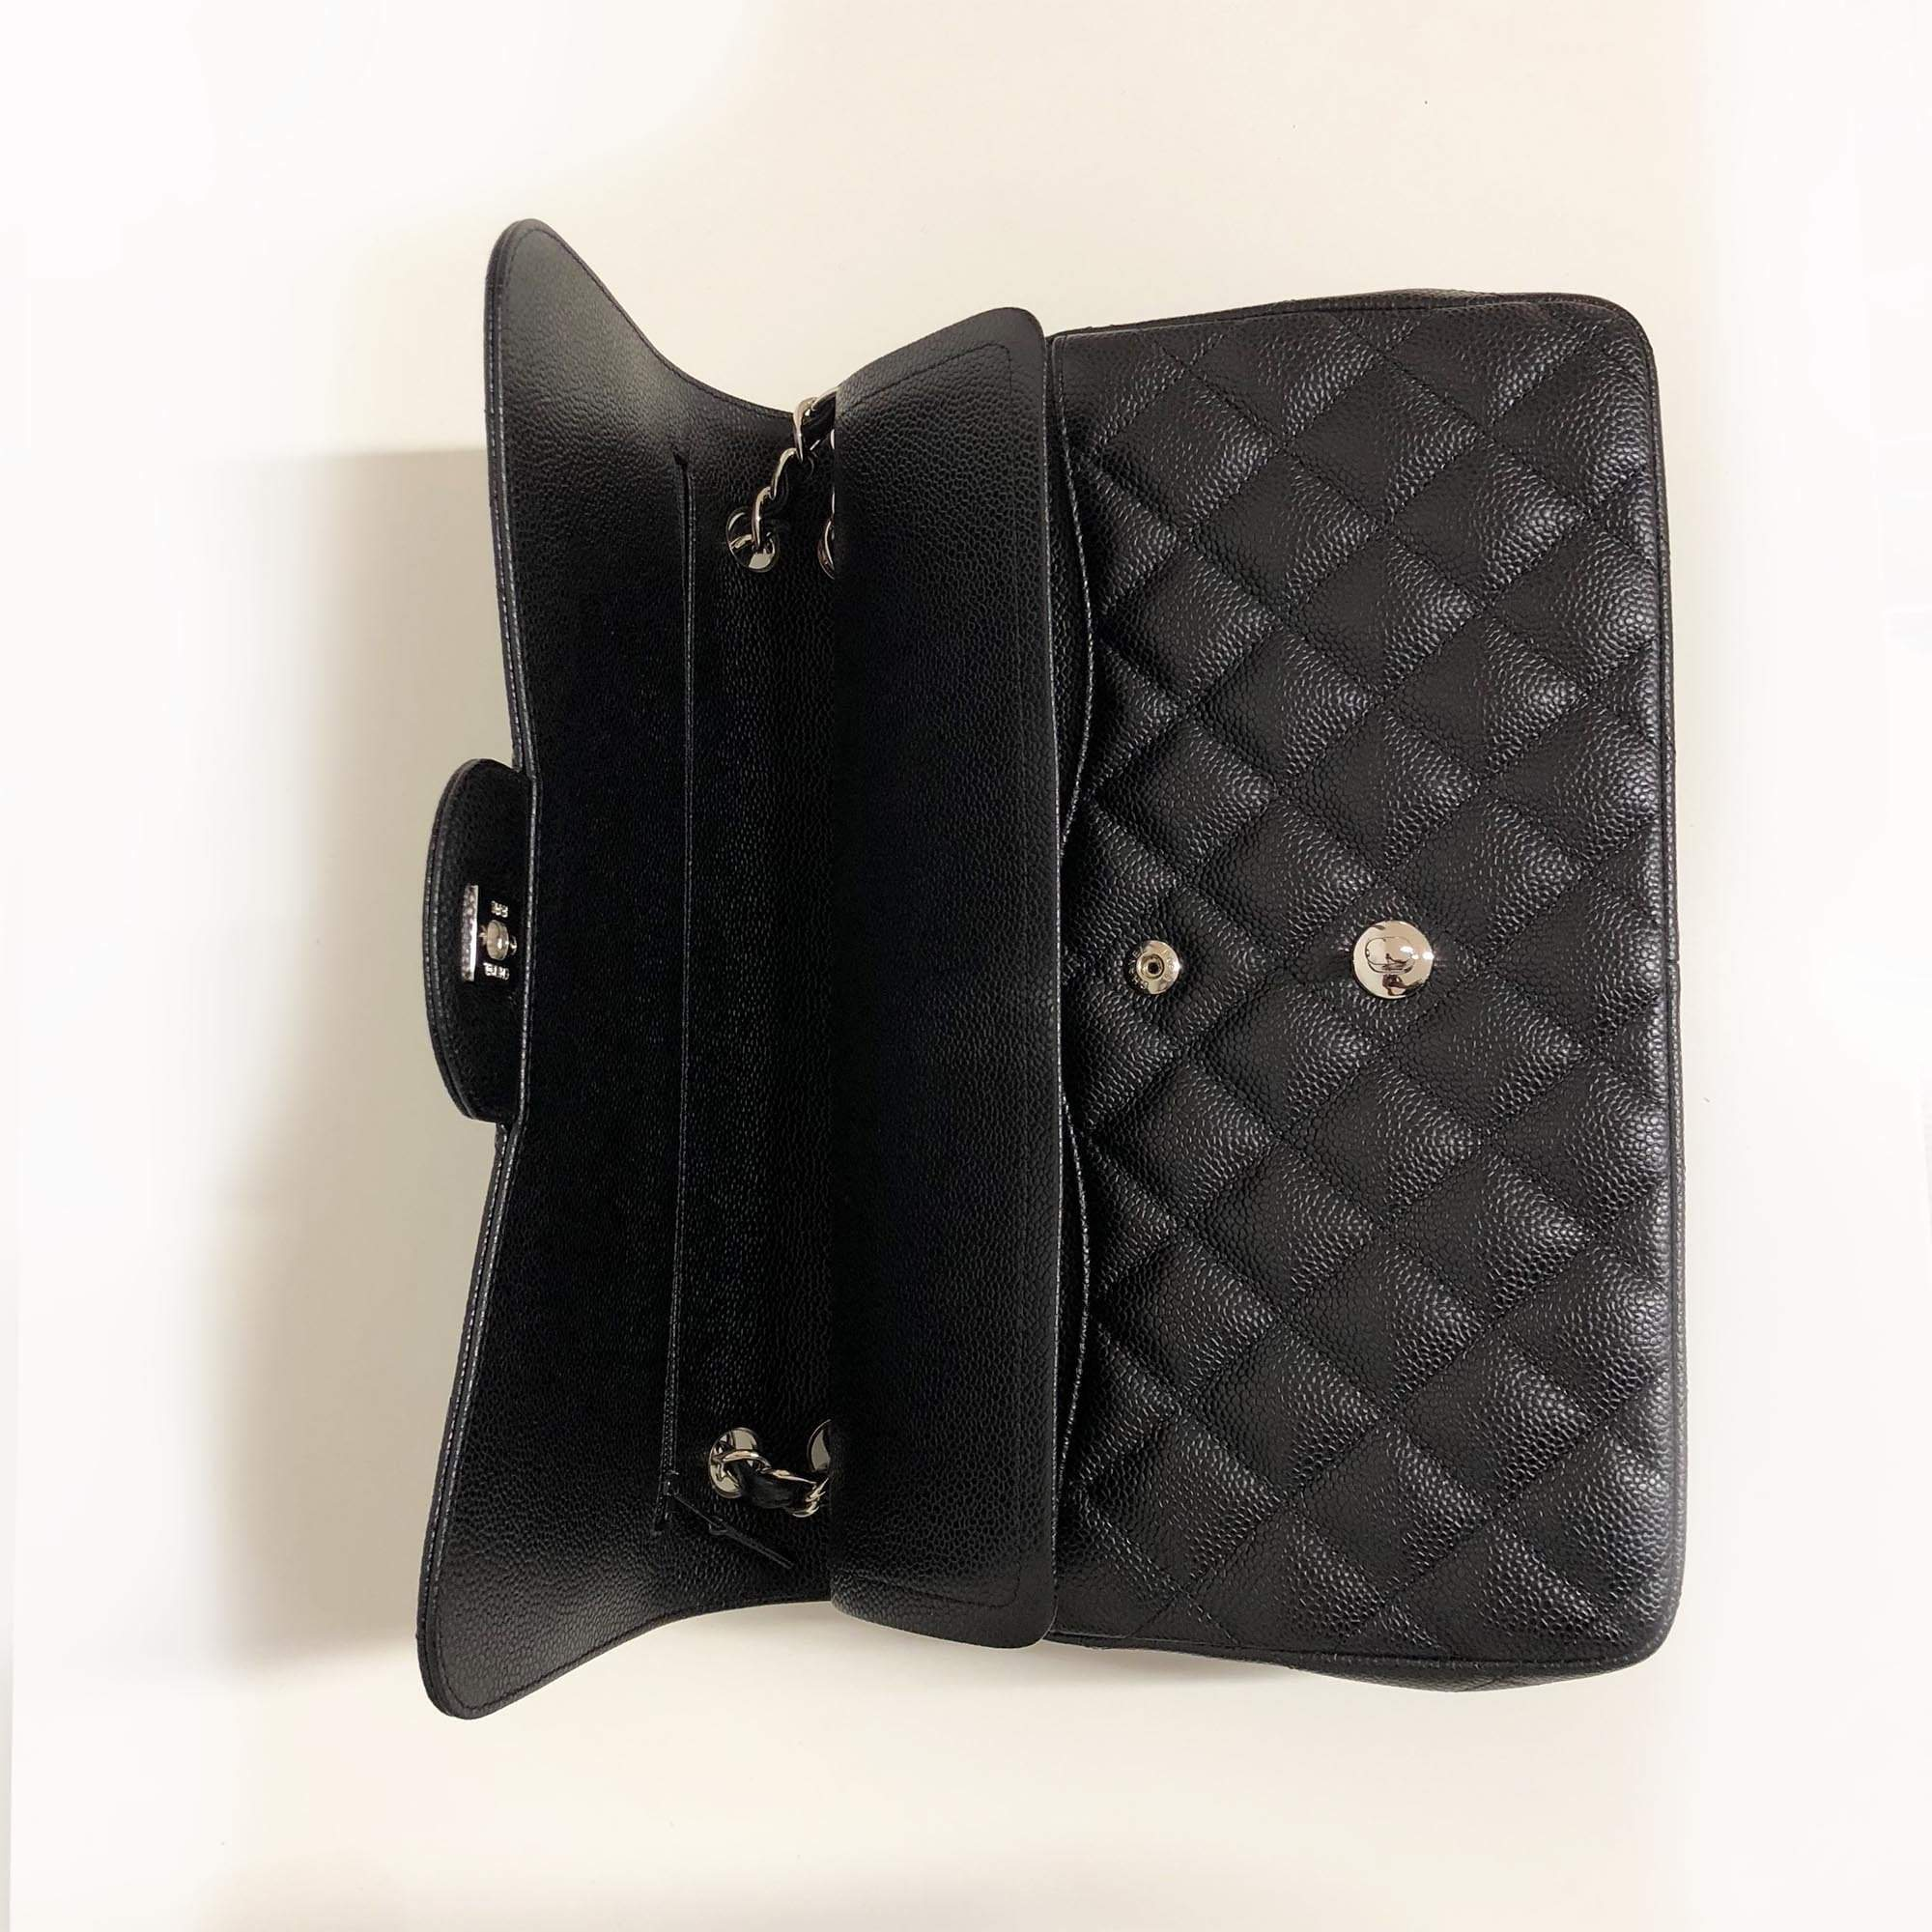 Chanel Black Caviar Jumbo Classic Double Flap Bag